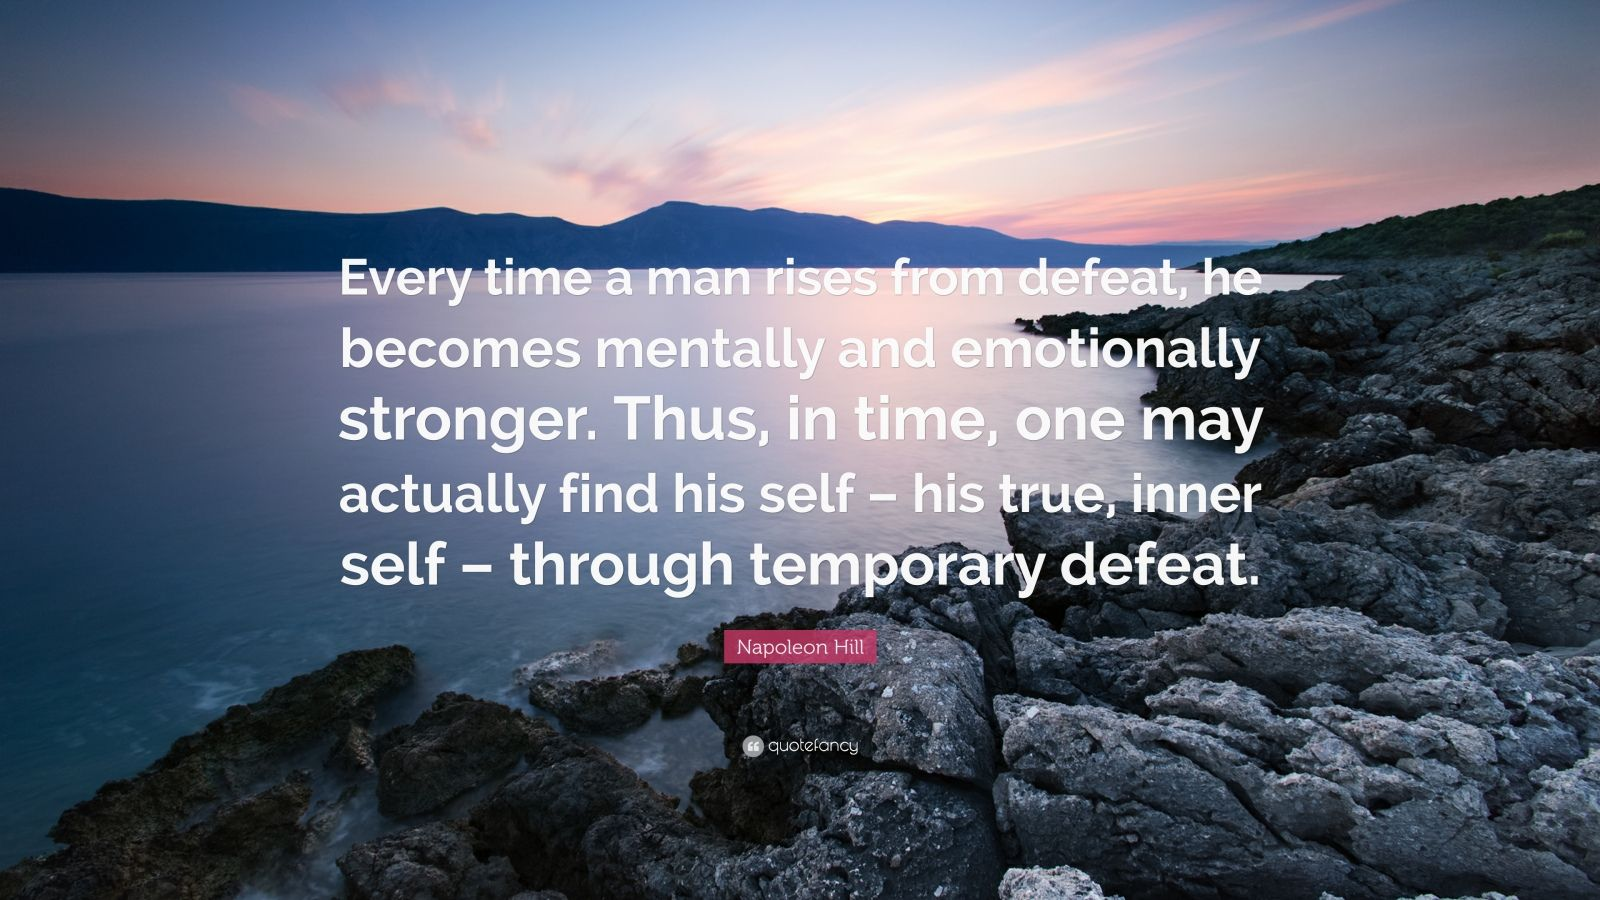 """Napoleon Hill Quote: """"Every time a man rises from defeat, he becomes mentally and emotionally stronger. Thus, in time, one may actually find his self – his true, inner self – through temporary defeat."""""""